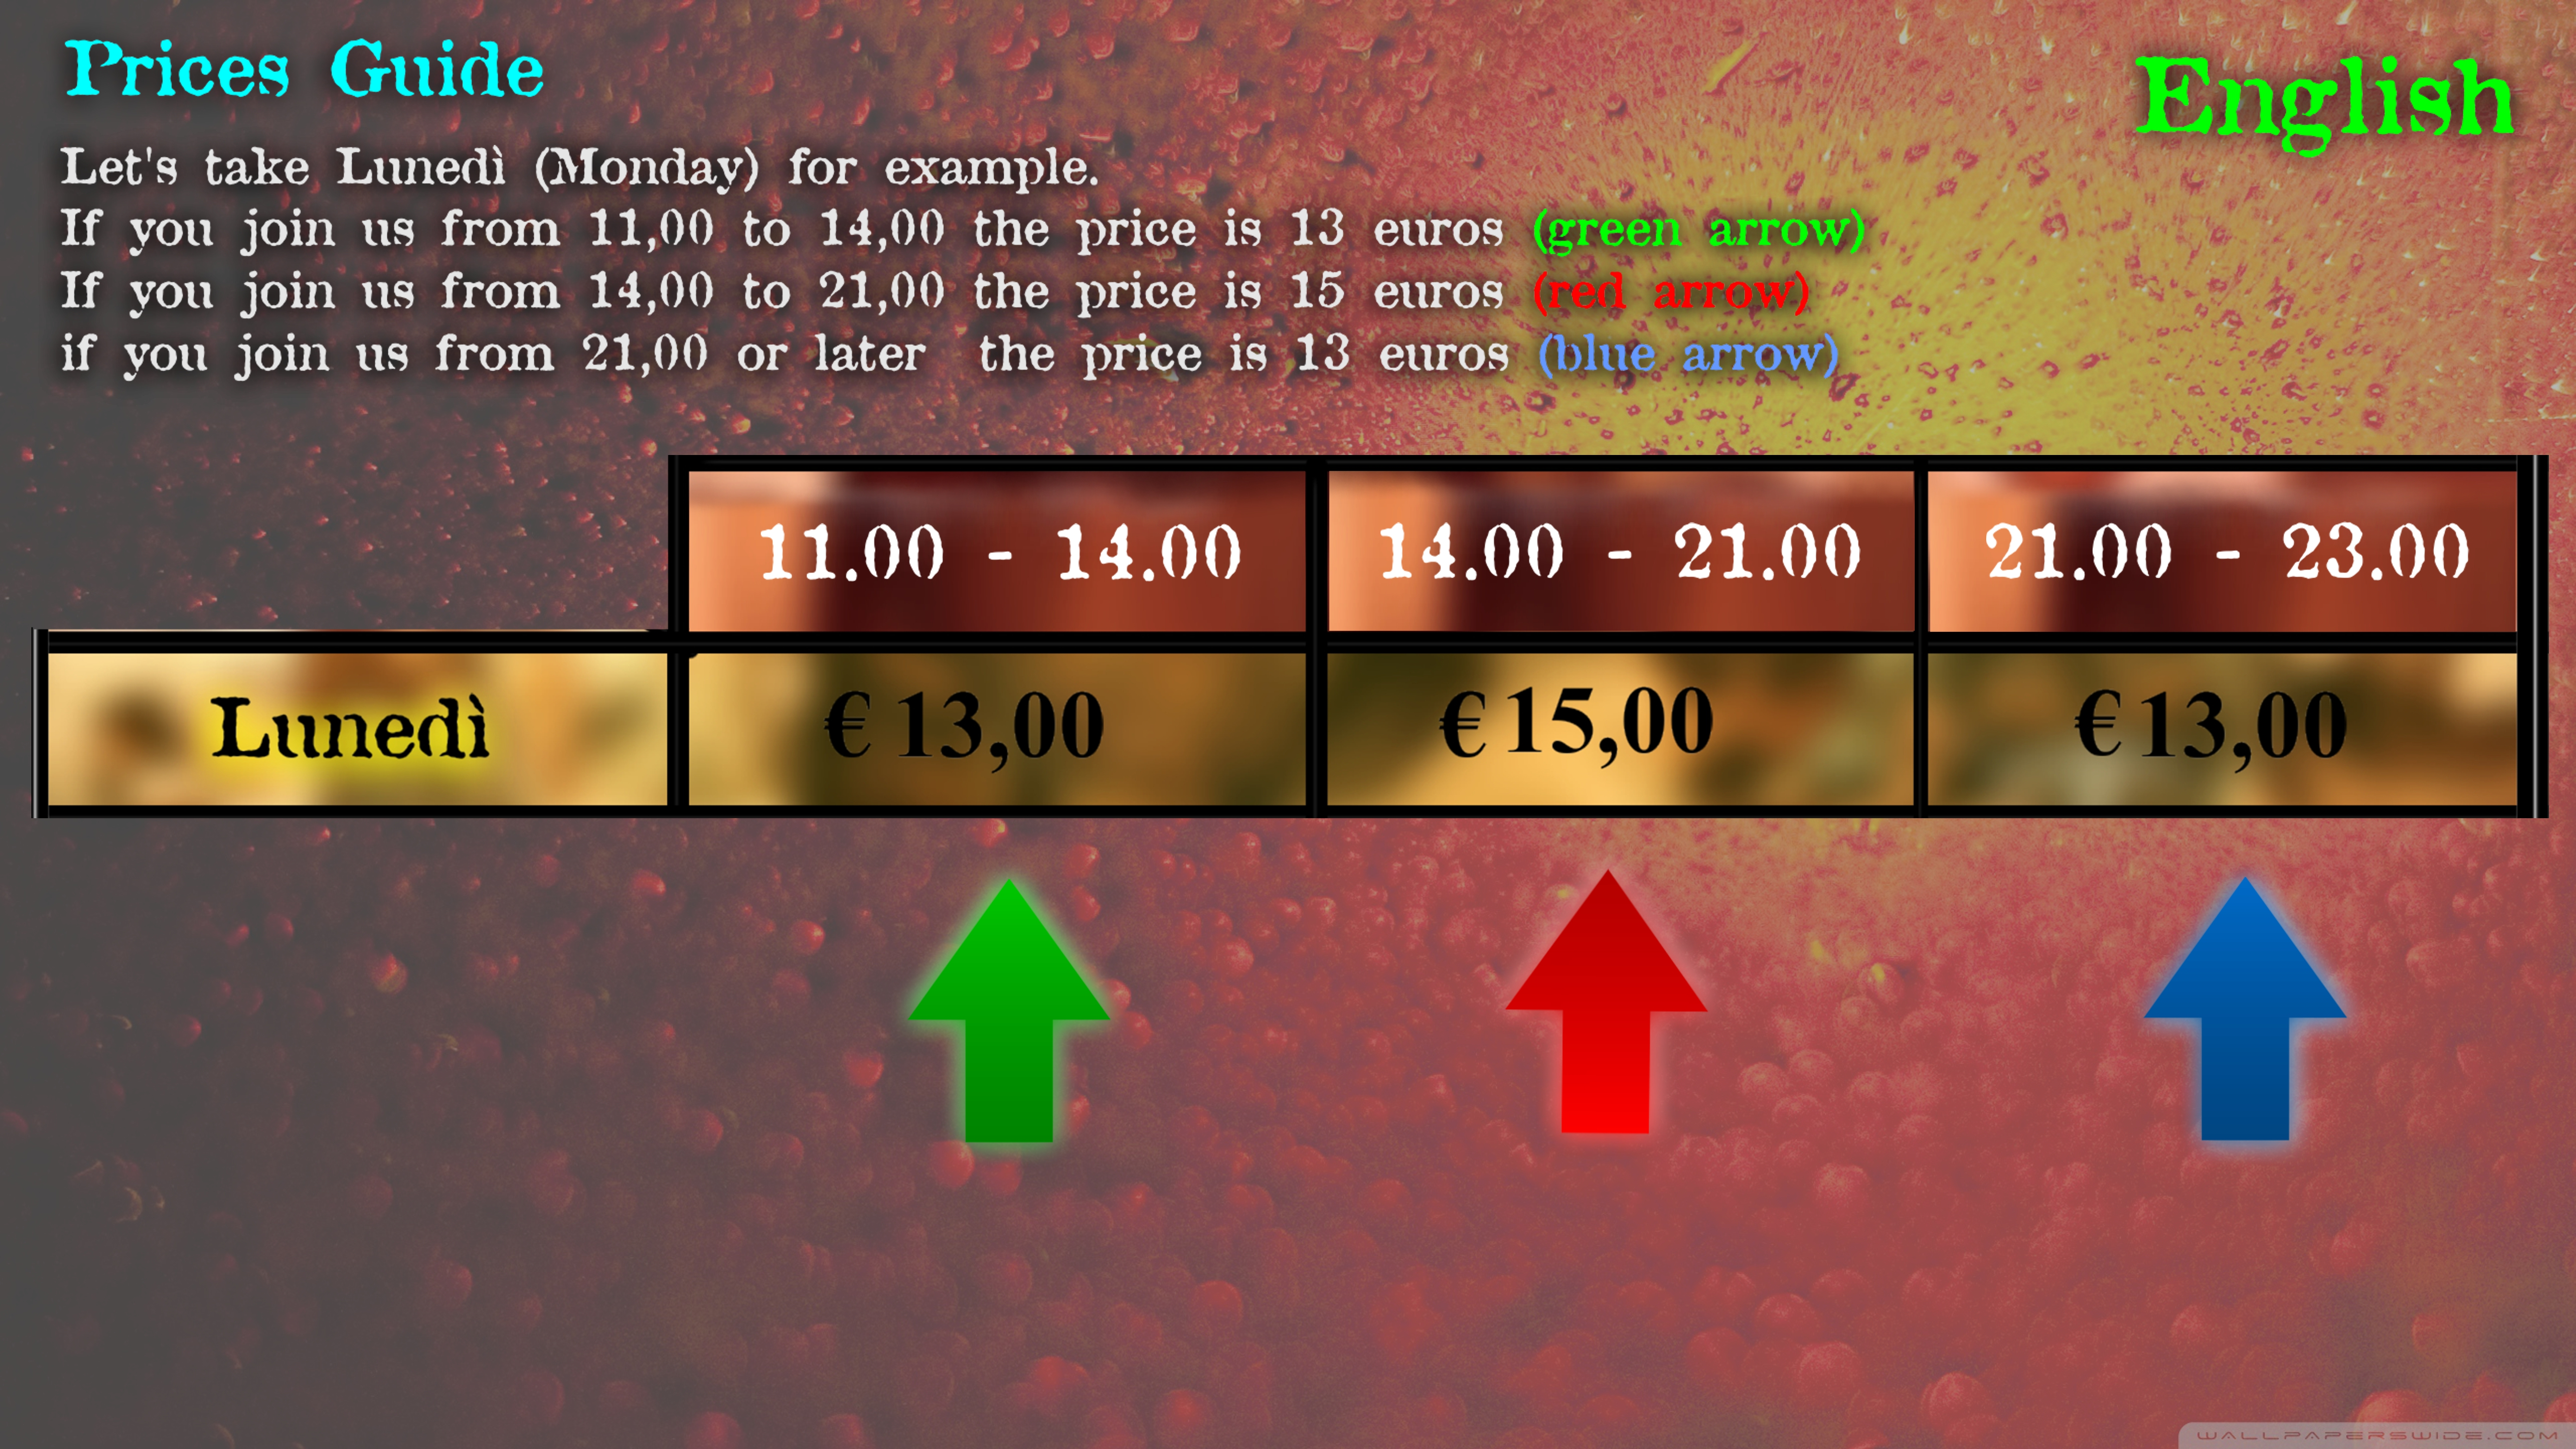 Prices guide jpg